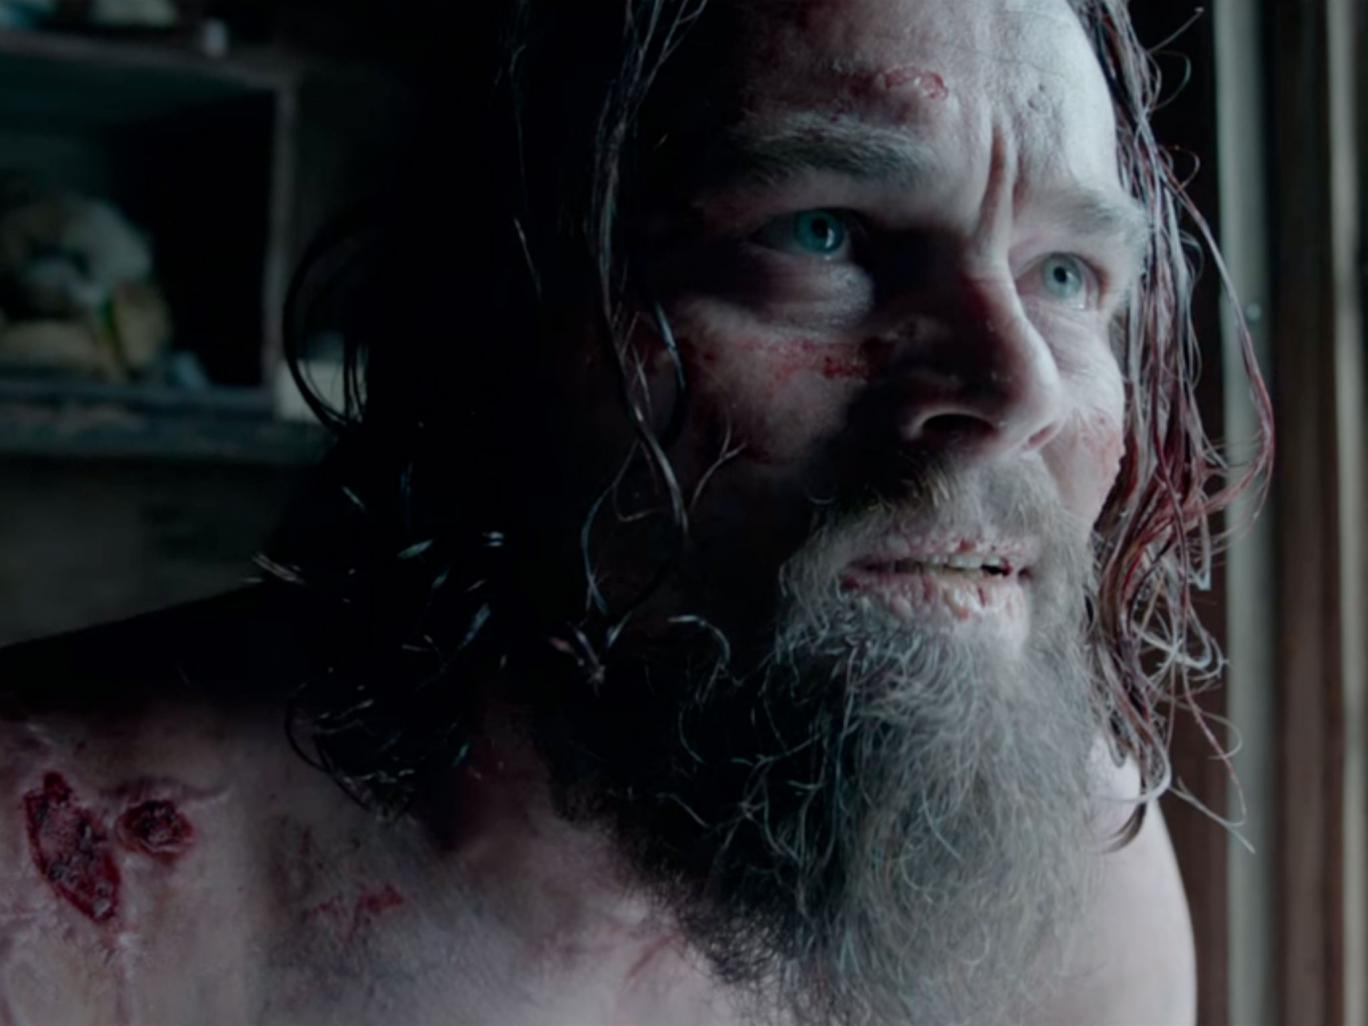 New trailer of the revenant the upcoming epic adventure drama movie